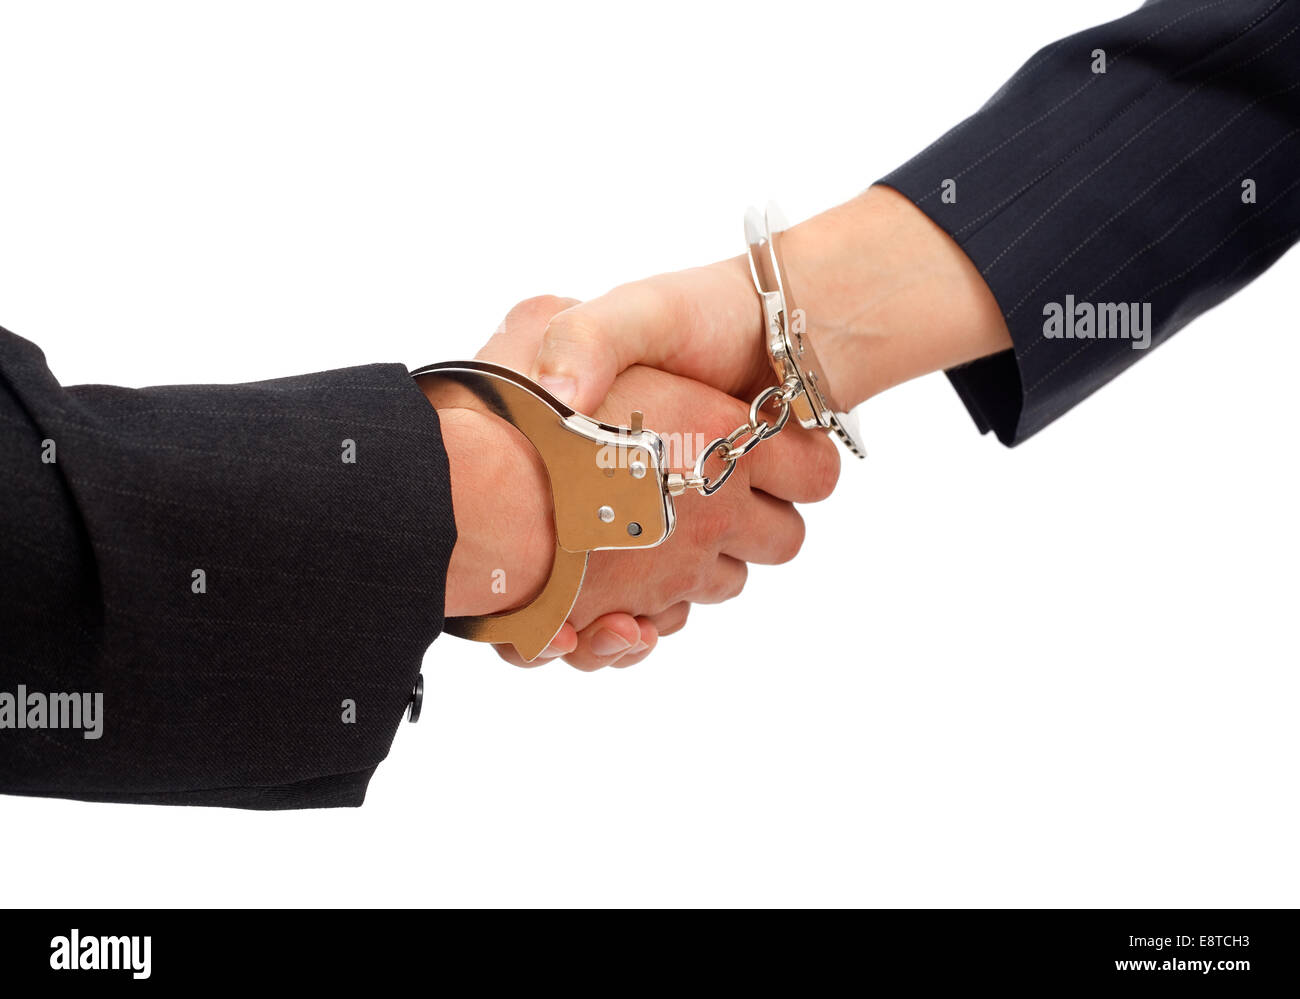 Forced handshake between two men, their hands linked with handcuffs - Stock Image